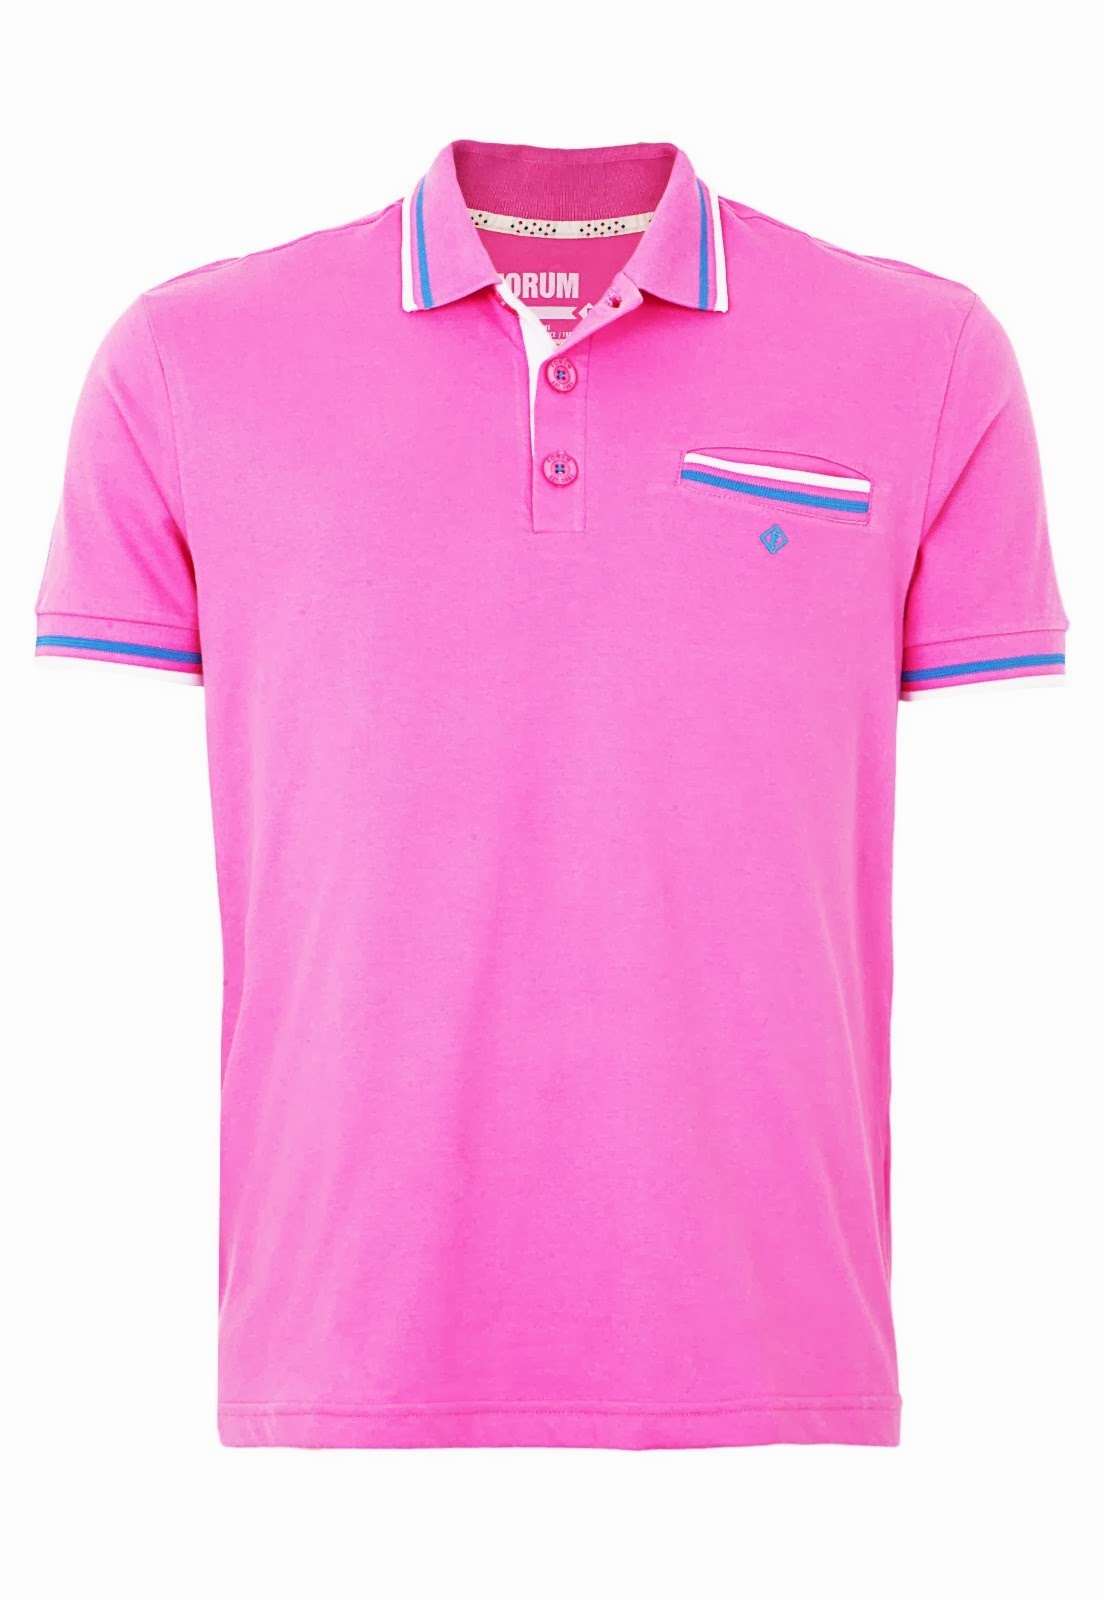 5db98b02f1272b http://www.dafiti.com.br/Camisa-Polo-Forum-Muscle-Detail-Rosa-1308147.html?af=1294241758&utm_source=1294241758&utm_medium=af&utm_content=linkdireto&a_aid=  ...